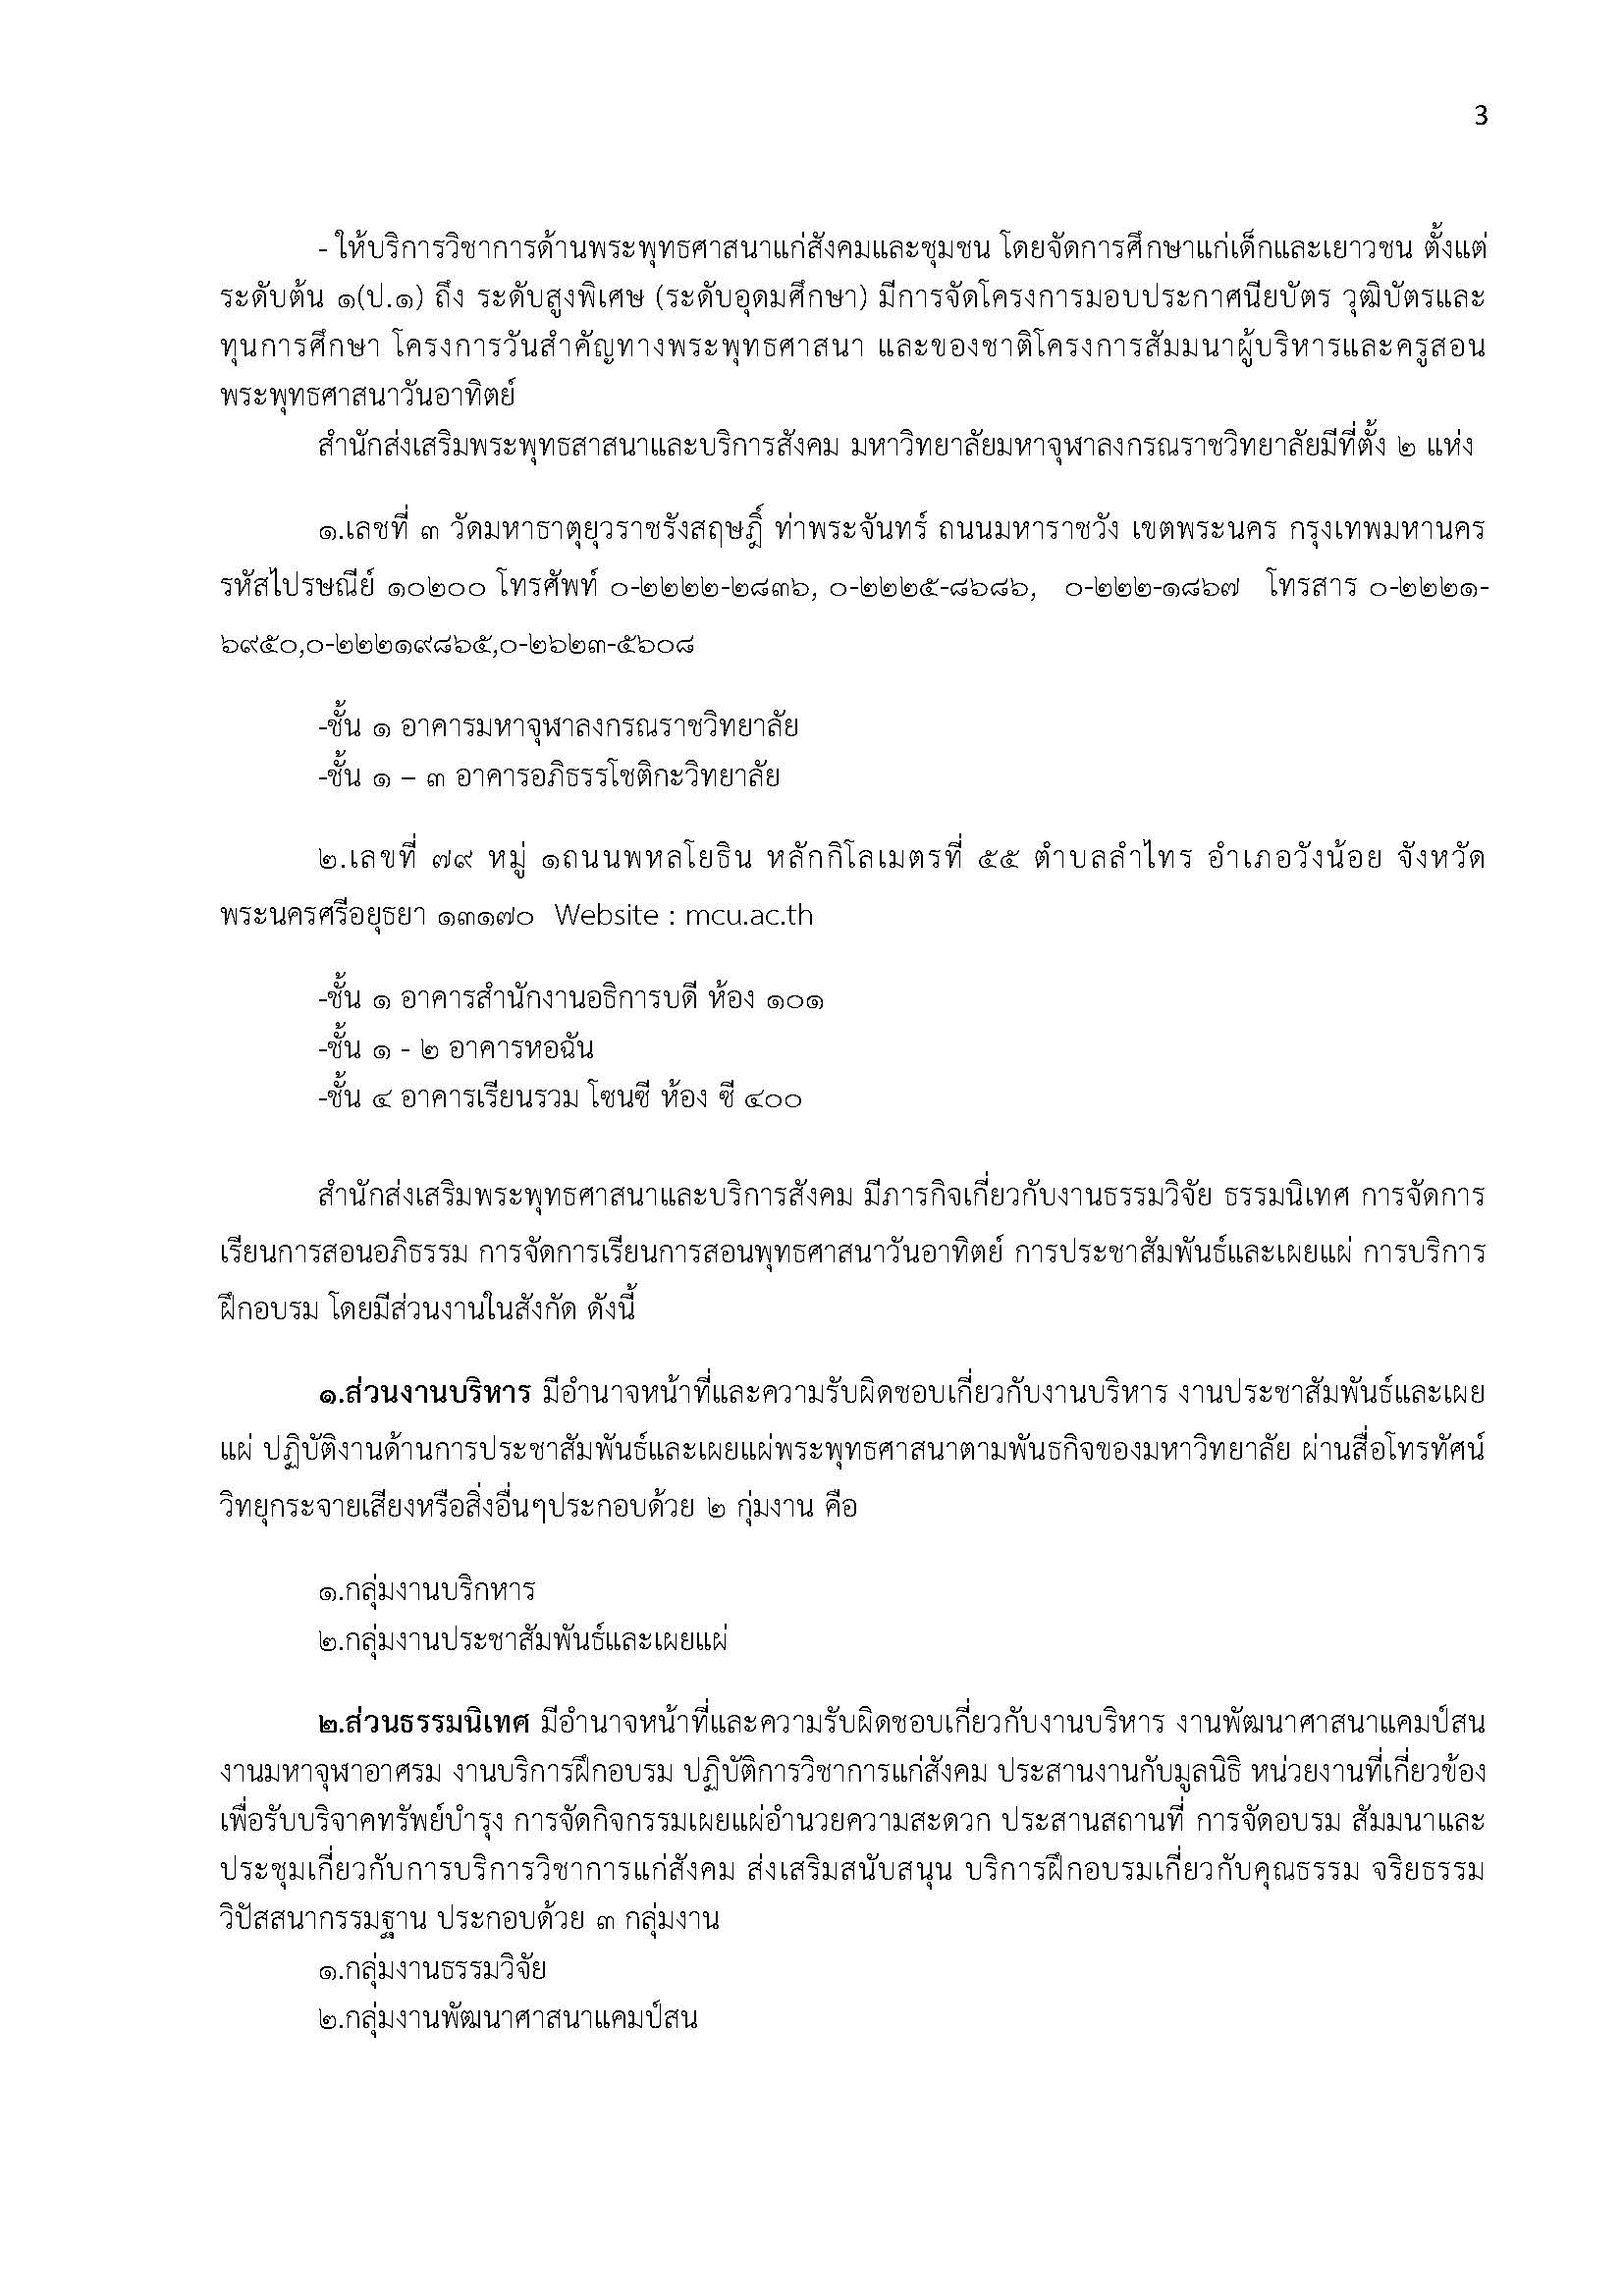 Gc_Page_03